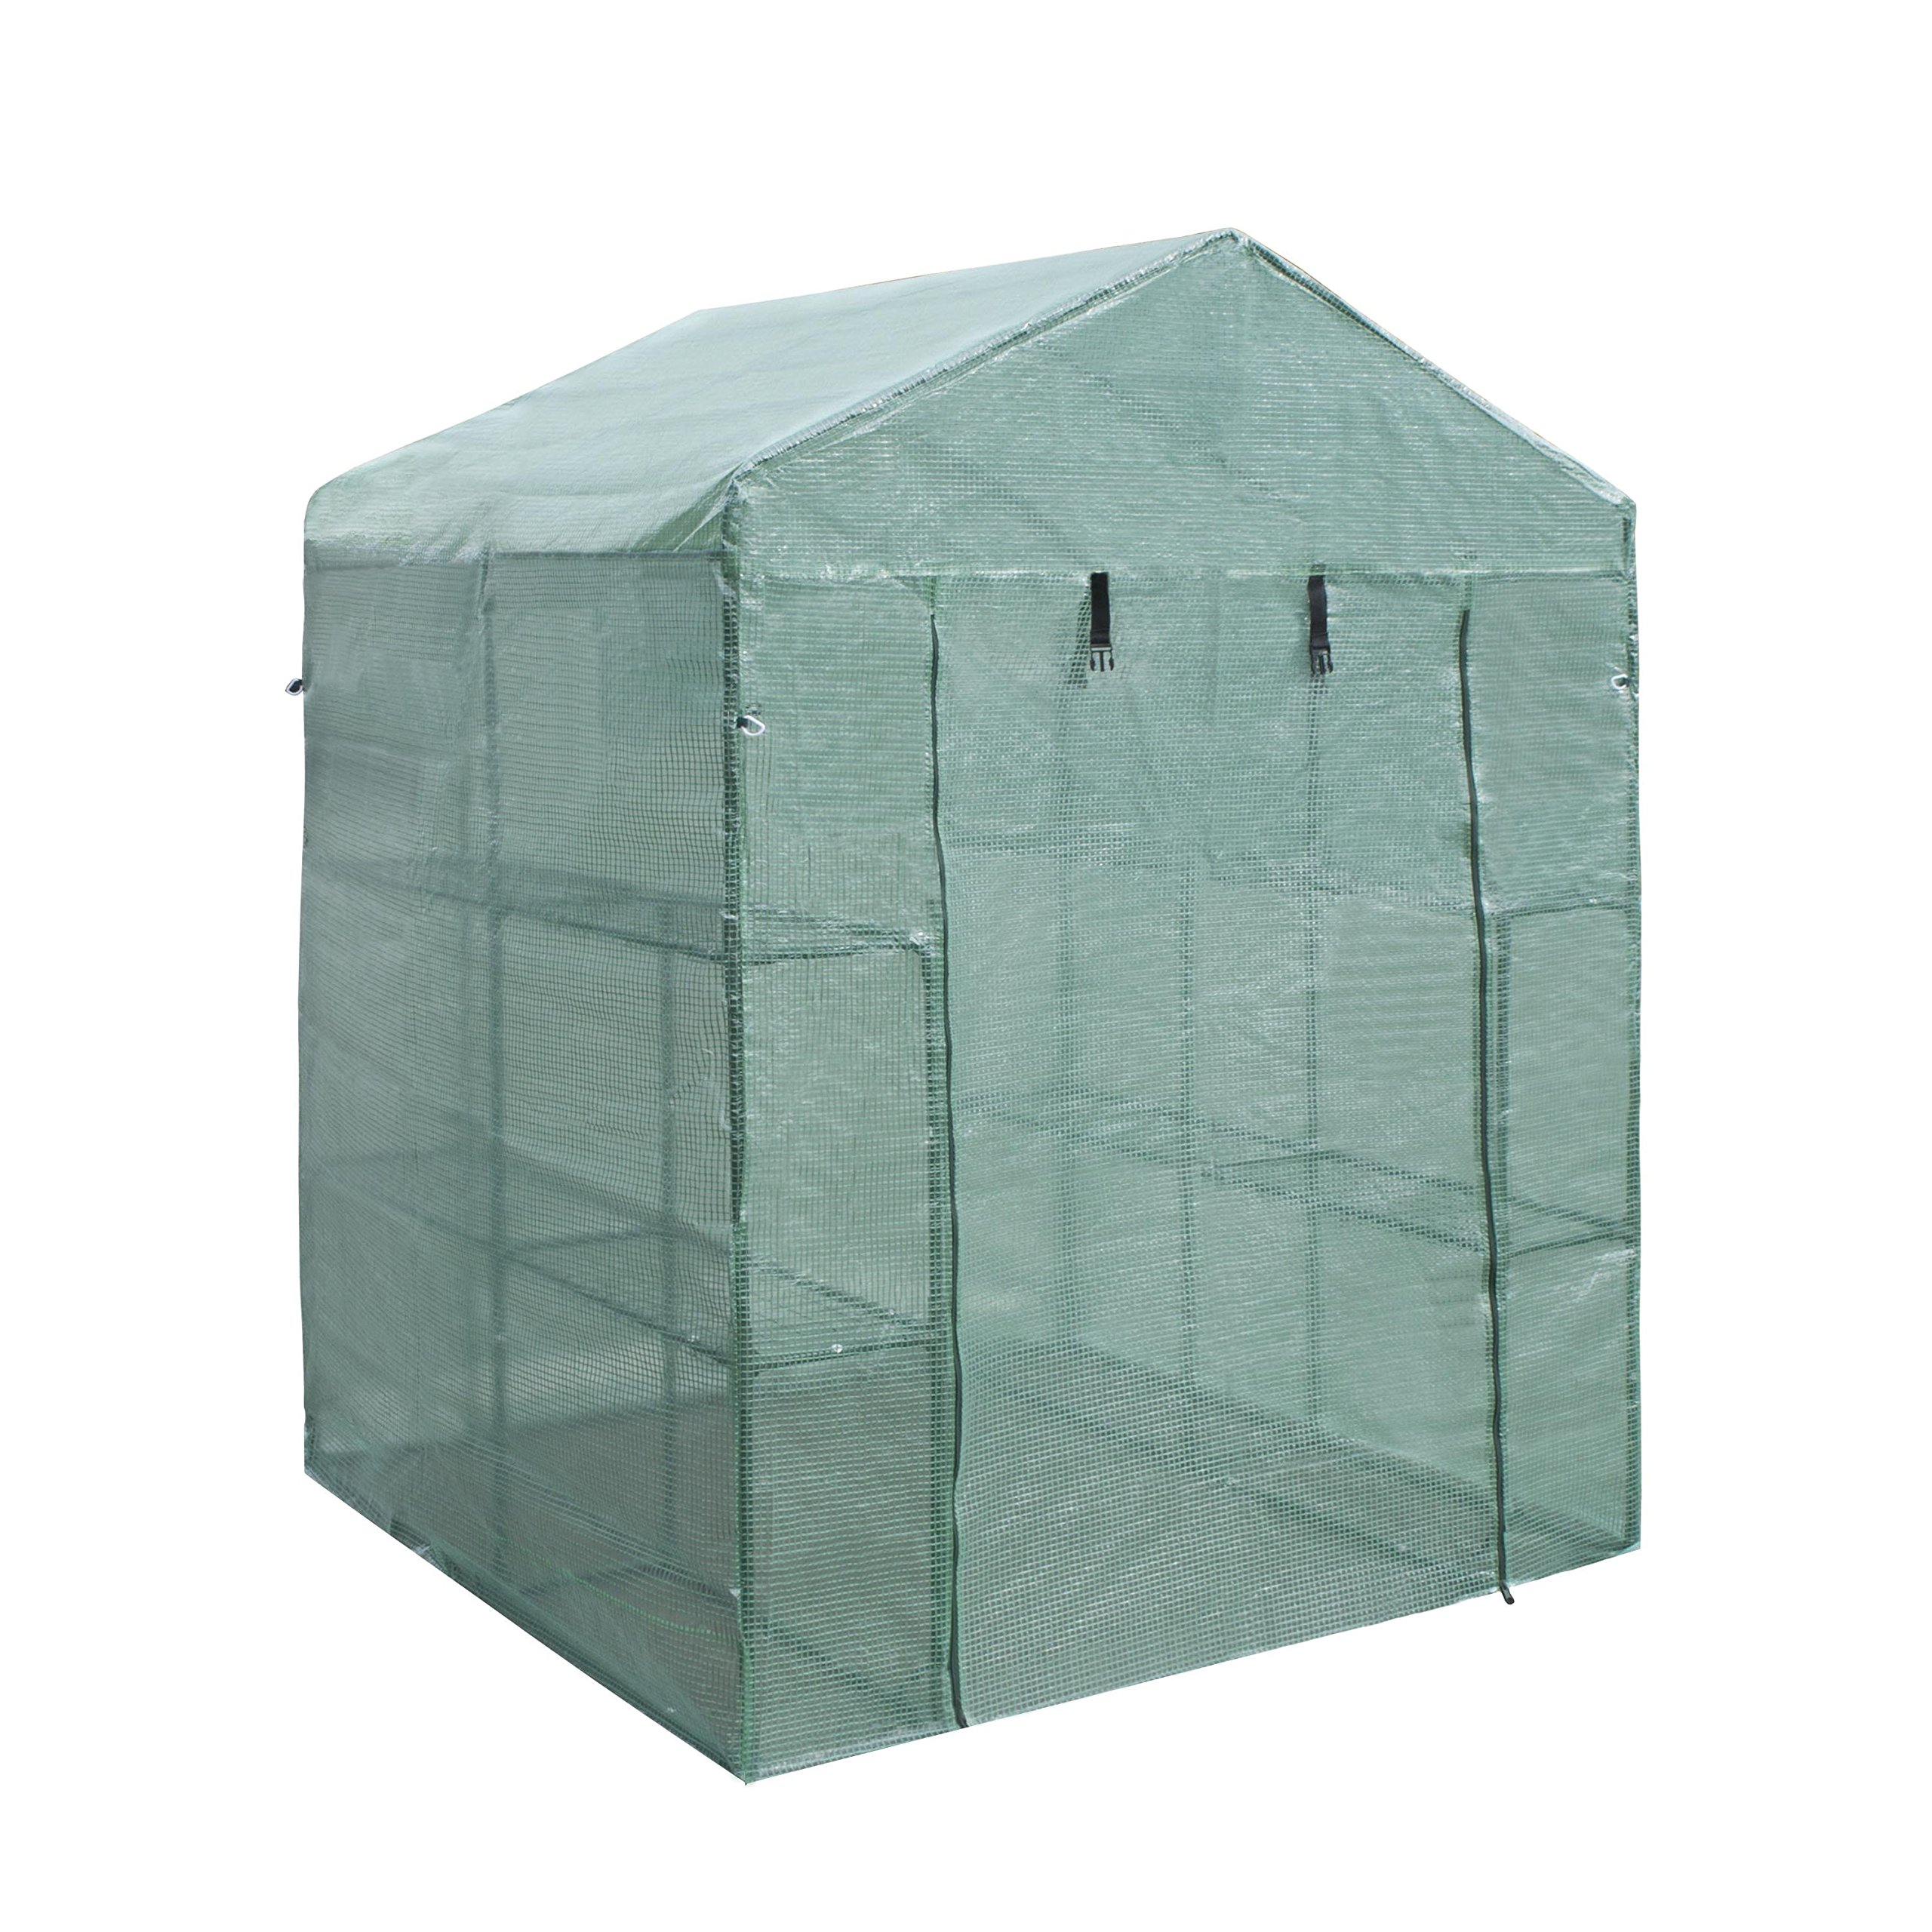 ALEKO GH57X57X77 Portable Walk In 4 Shelves Waterproof Garden Plant Outdoor Greenhouse Shed 56X56X76 Inches